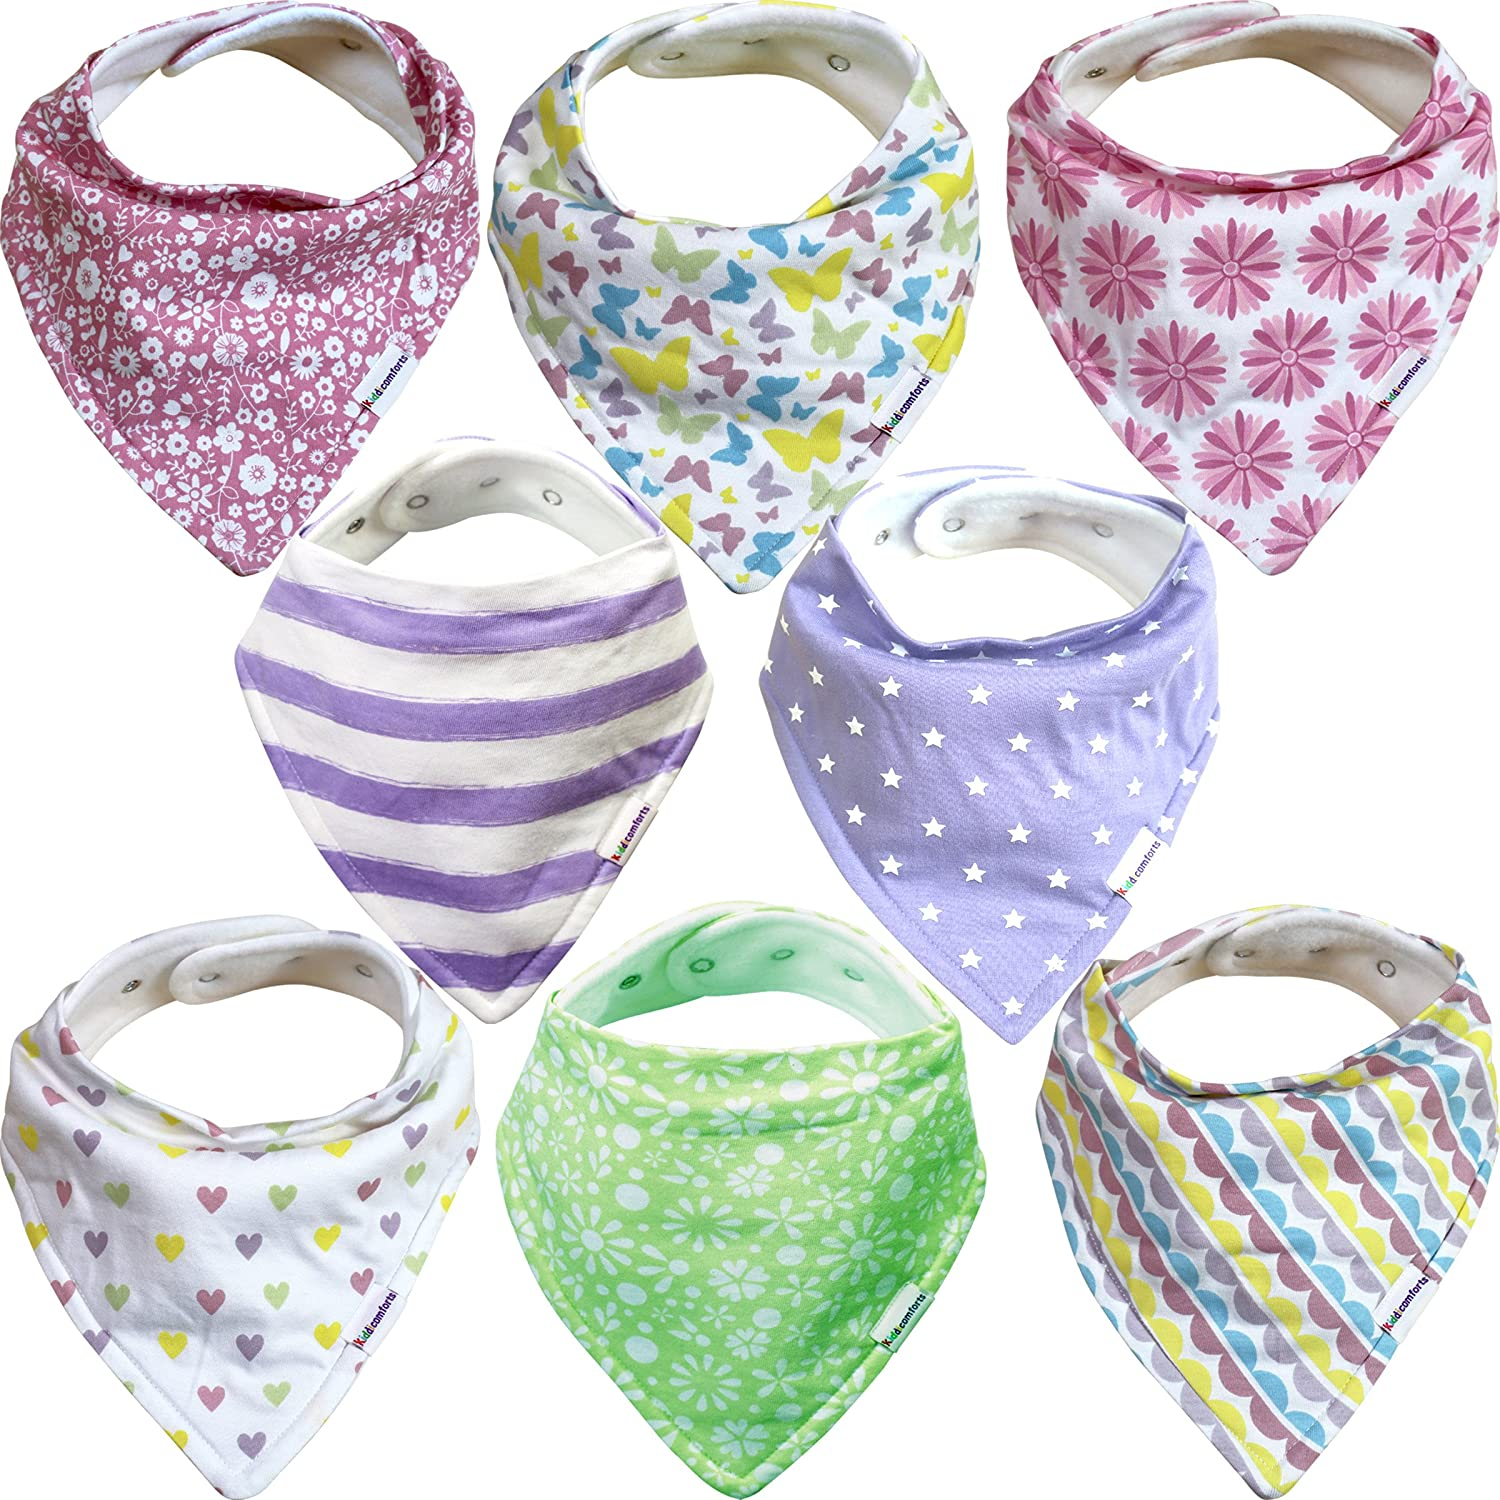 Baby Bandana Bibs for Girls – 8 Pack Baby Drool Bib Gift Set, Organic Cotton, 3 Snaps to Fit All Neck Sizes, Soft, Extra Absorbent, Easy to Clean, Perfect Baby Shower Gift Set Aspiire Limited KC6051